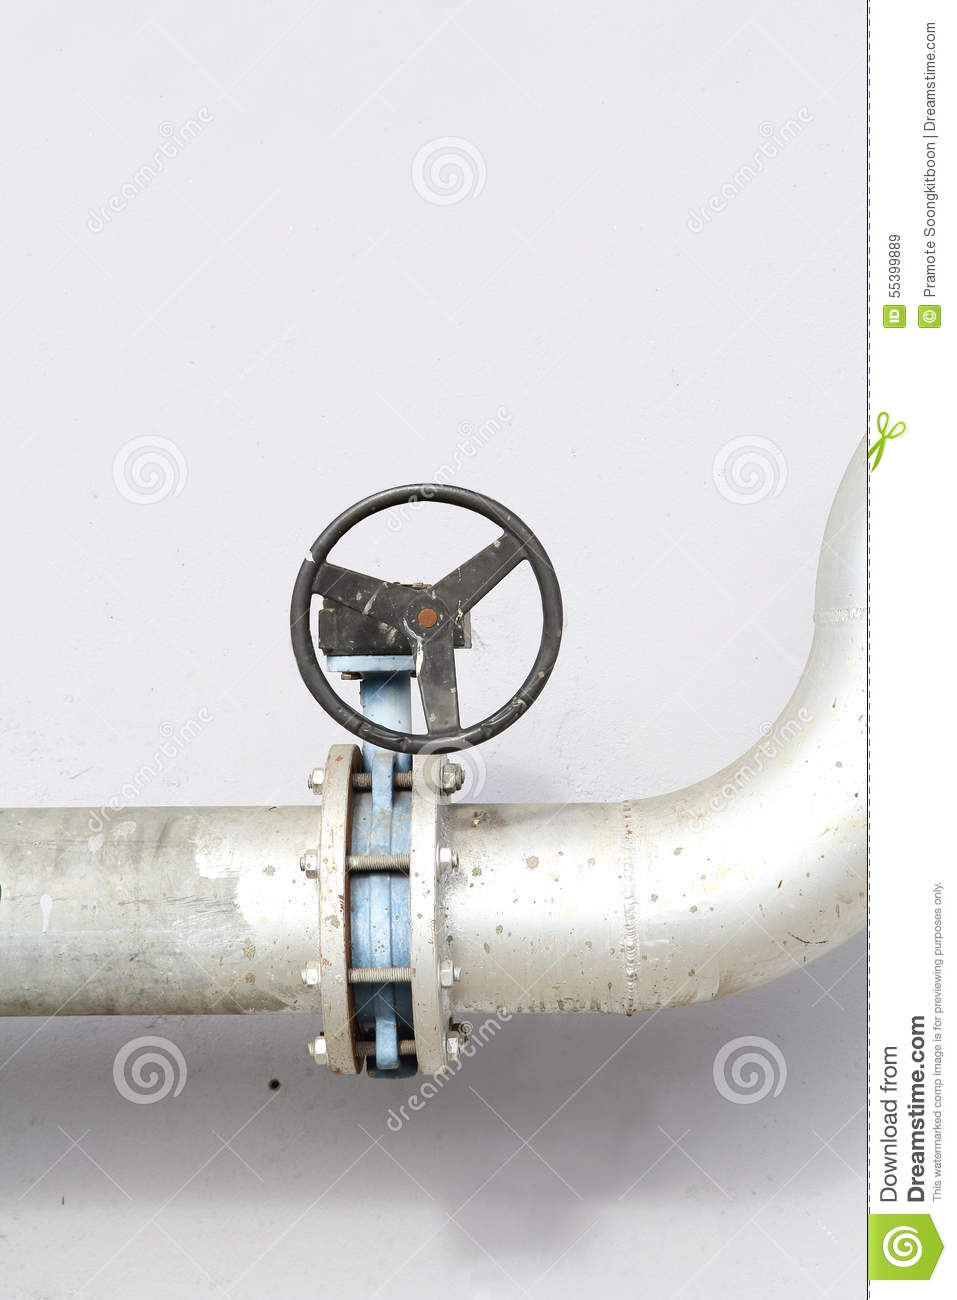 Main faucet of water stock image. Image of stopcock, tube - 55399889